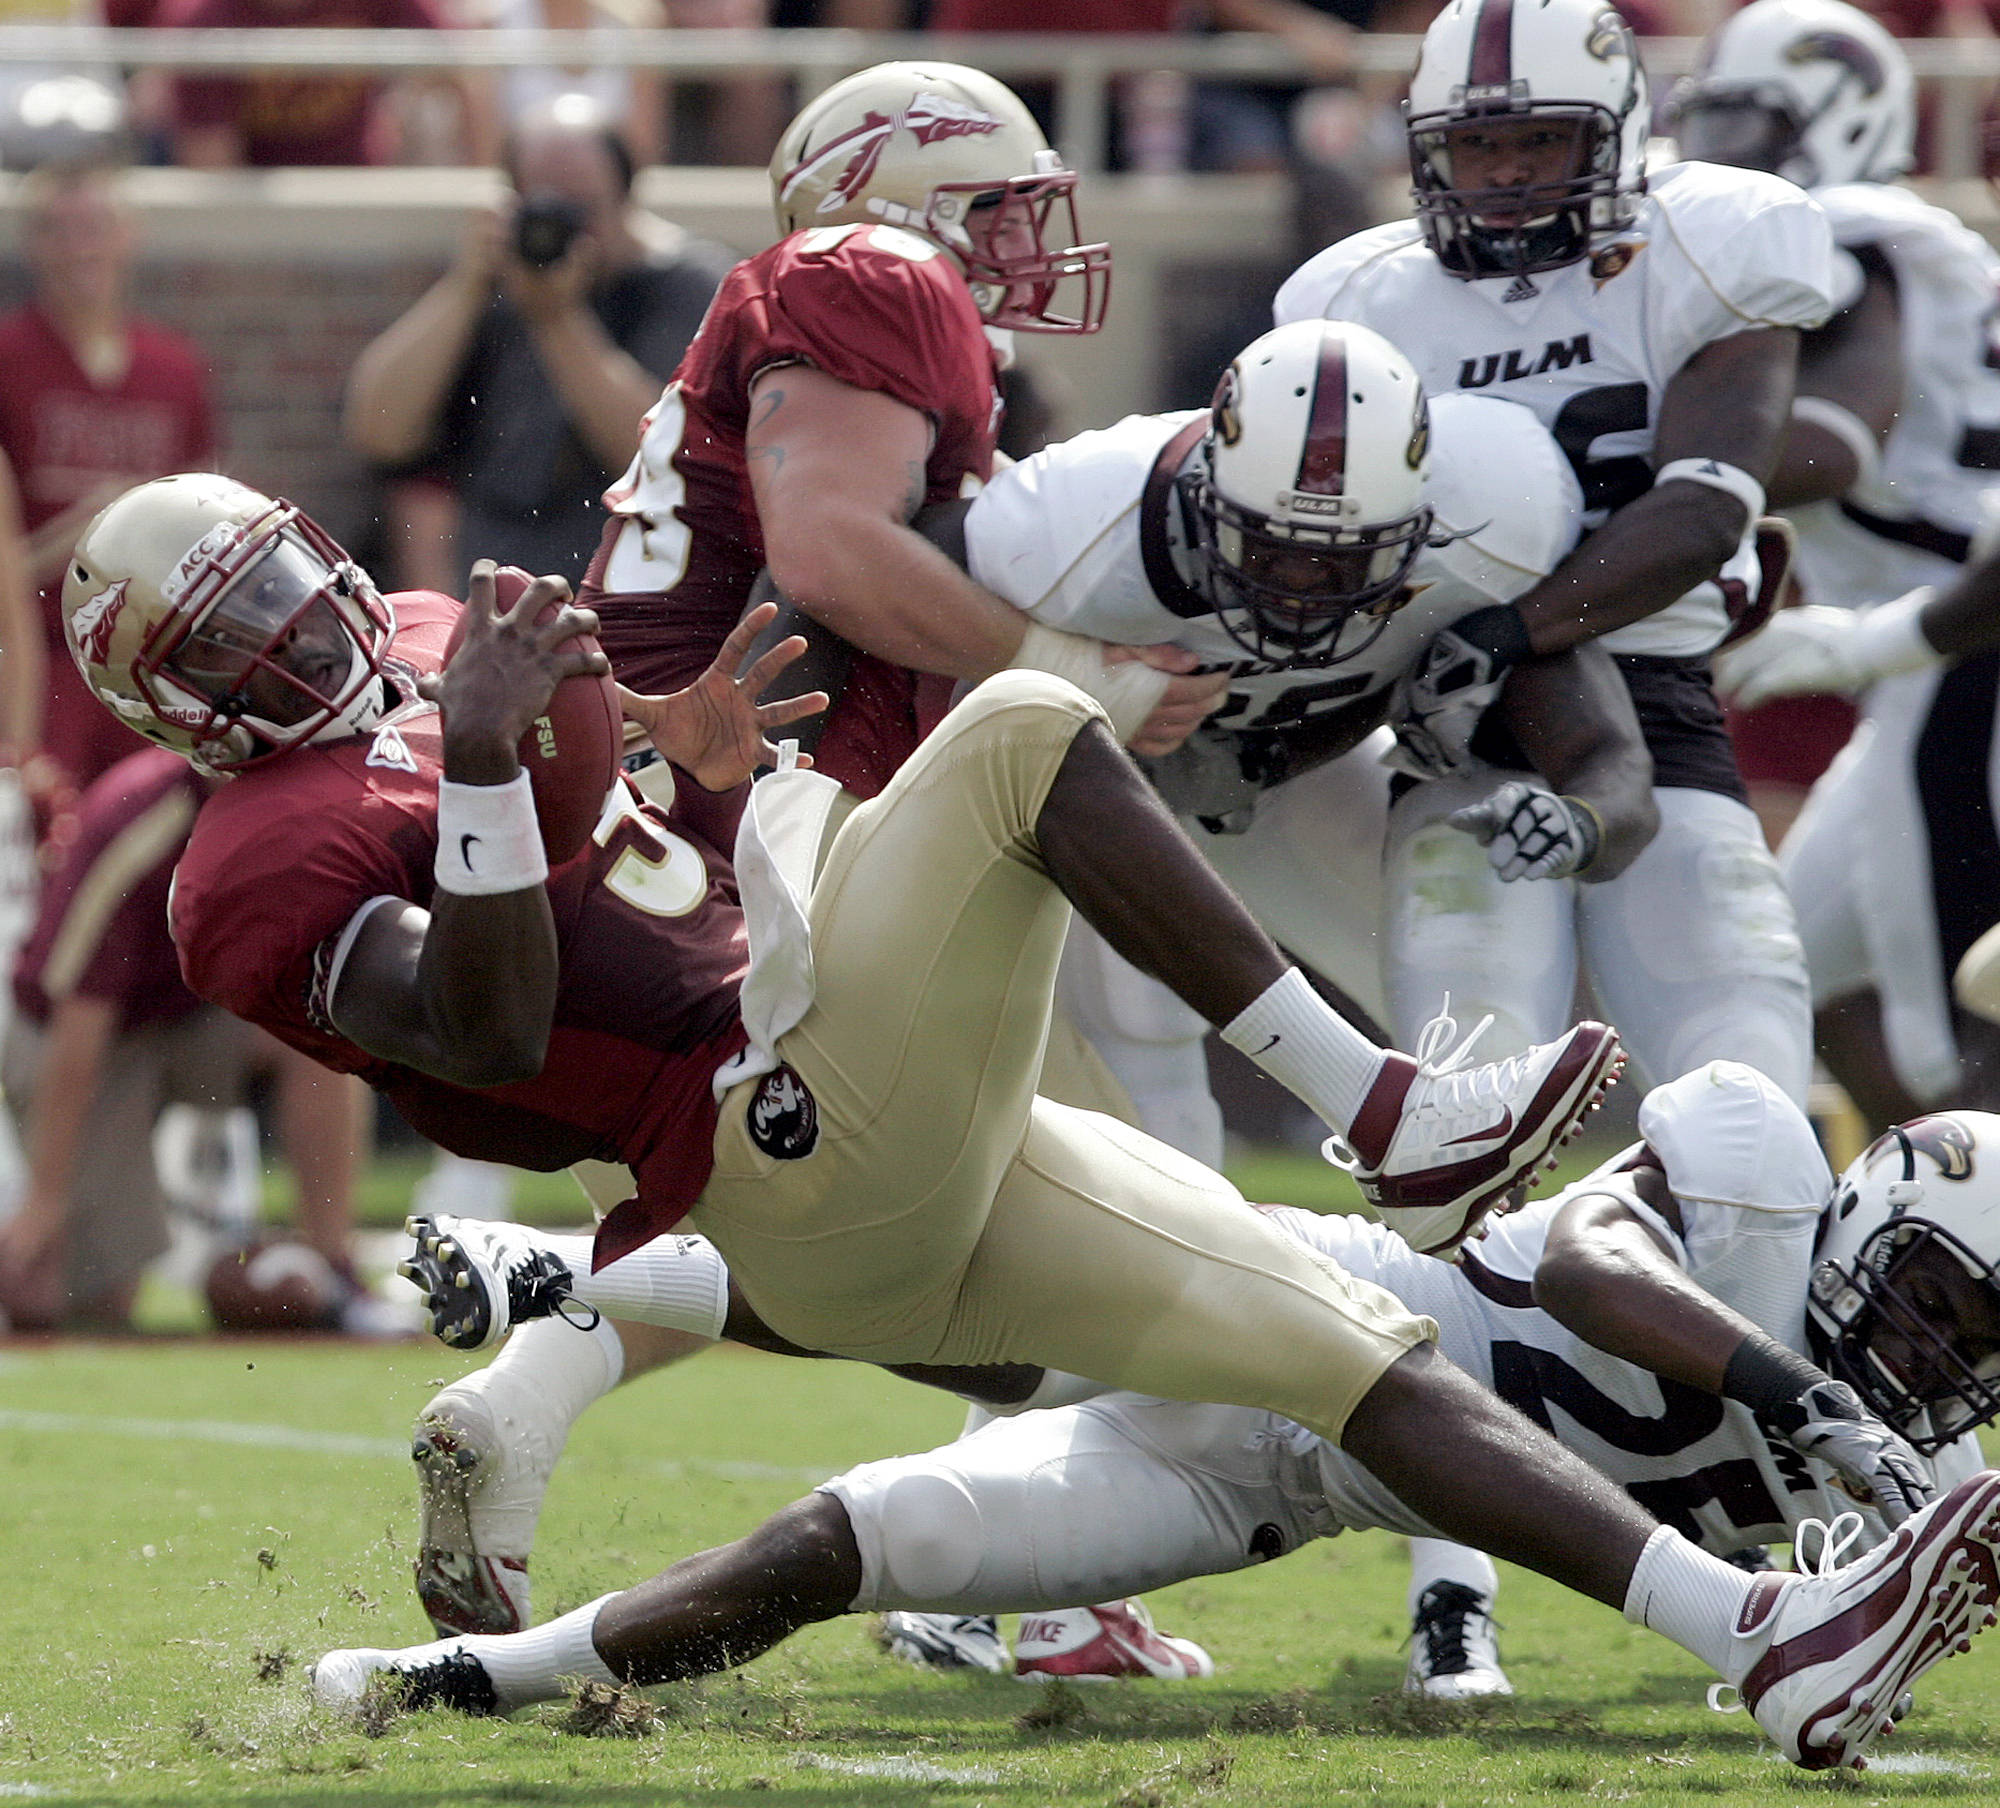 Florida State's EJ  Manuel, left, is tackled just short of the end zone by Louisiana-Monroe's Isaiah Newsome in the second quarter of a NCAA college football game on Saturday, Sept. 3, 2011, in Tallahassee, Fla. (AP Photo/Steve Cannon)